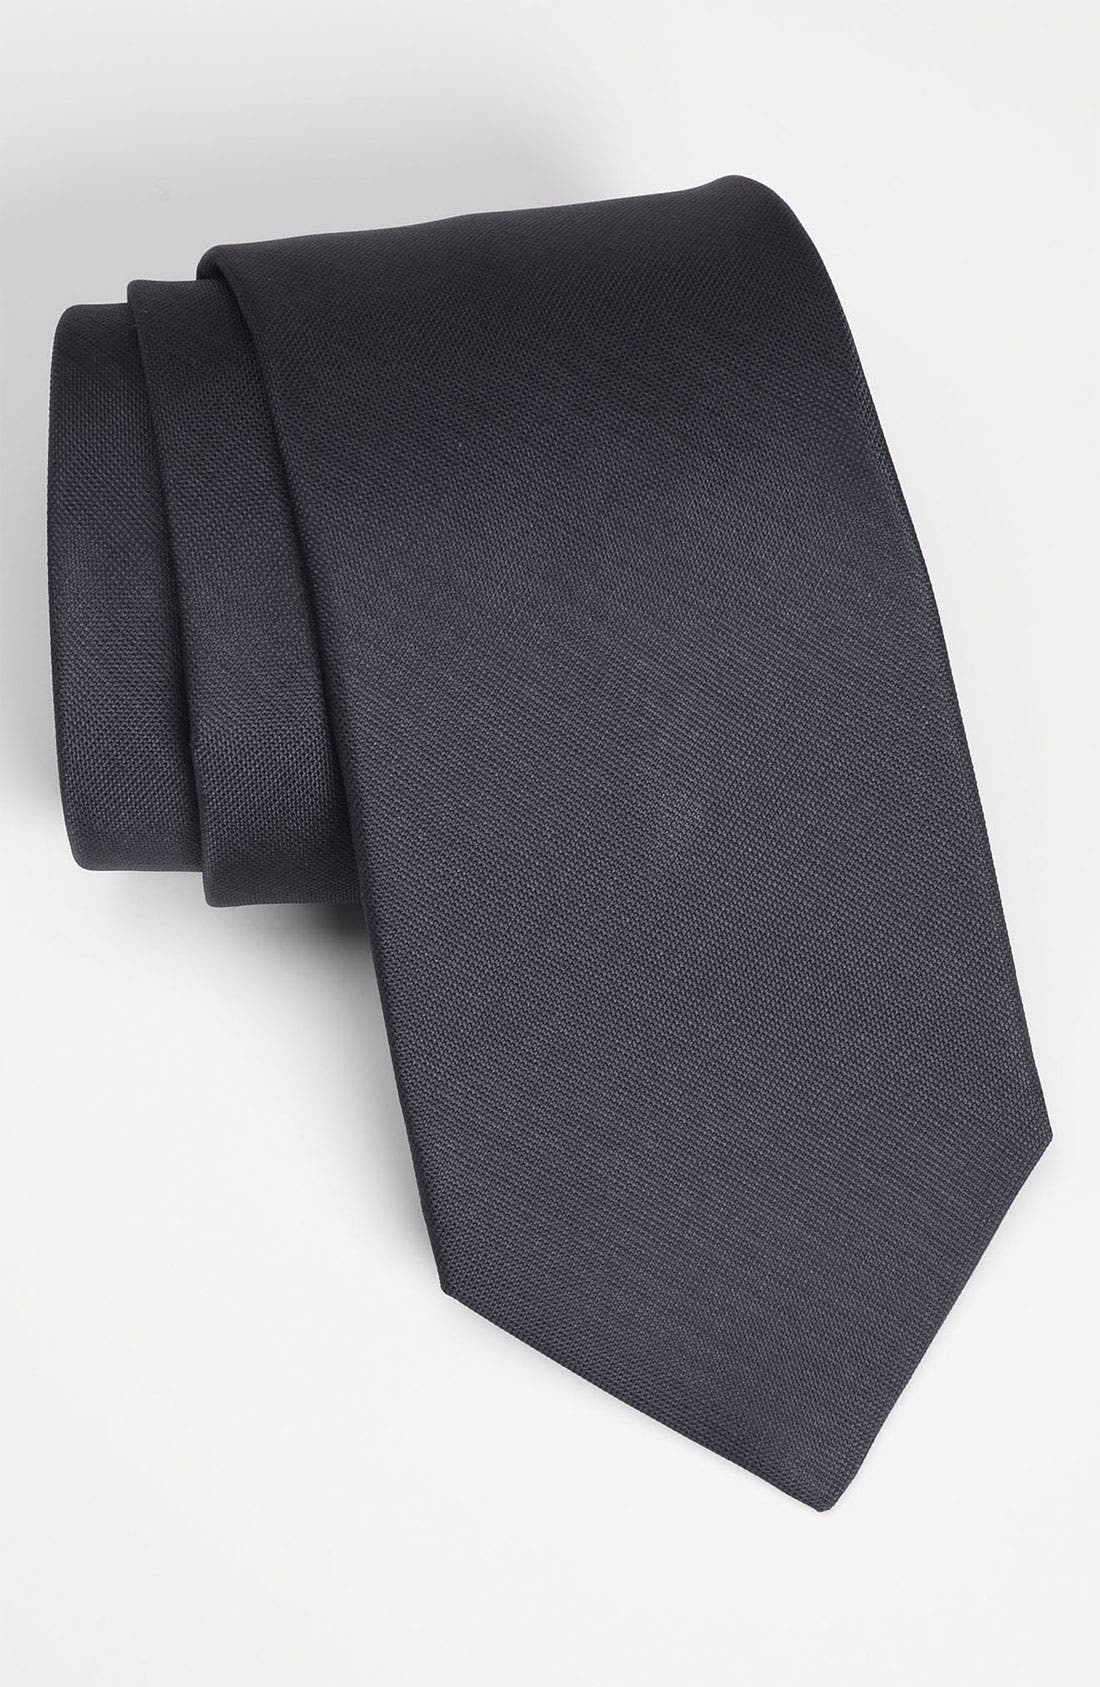 Alternate Image 1 Selected - Michael Kors Woven Silk Tie (Tall)